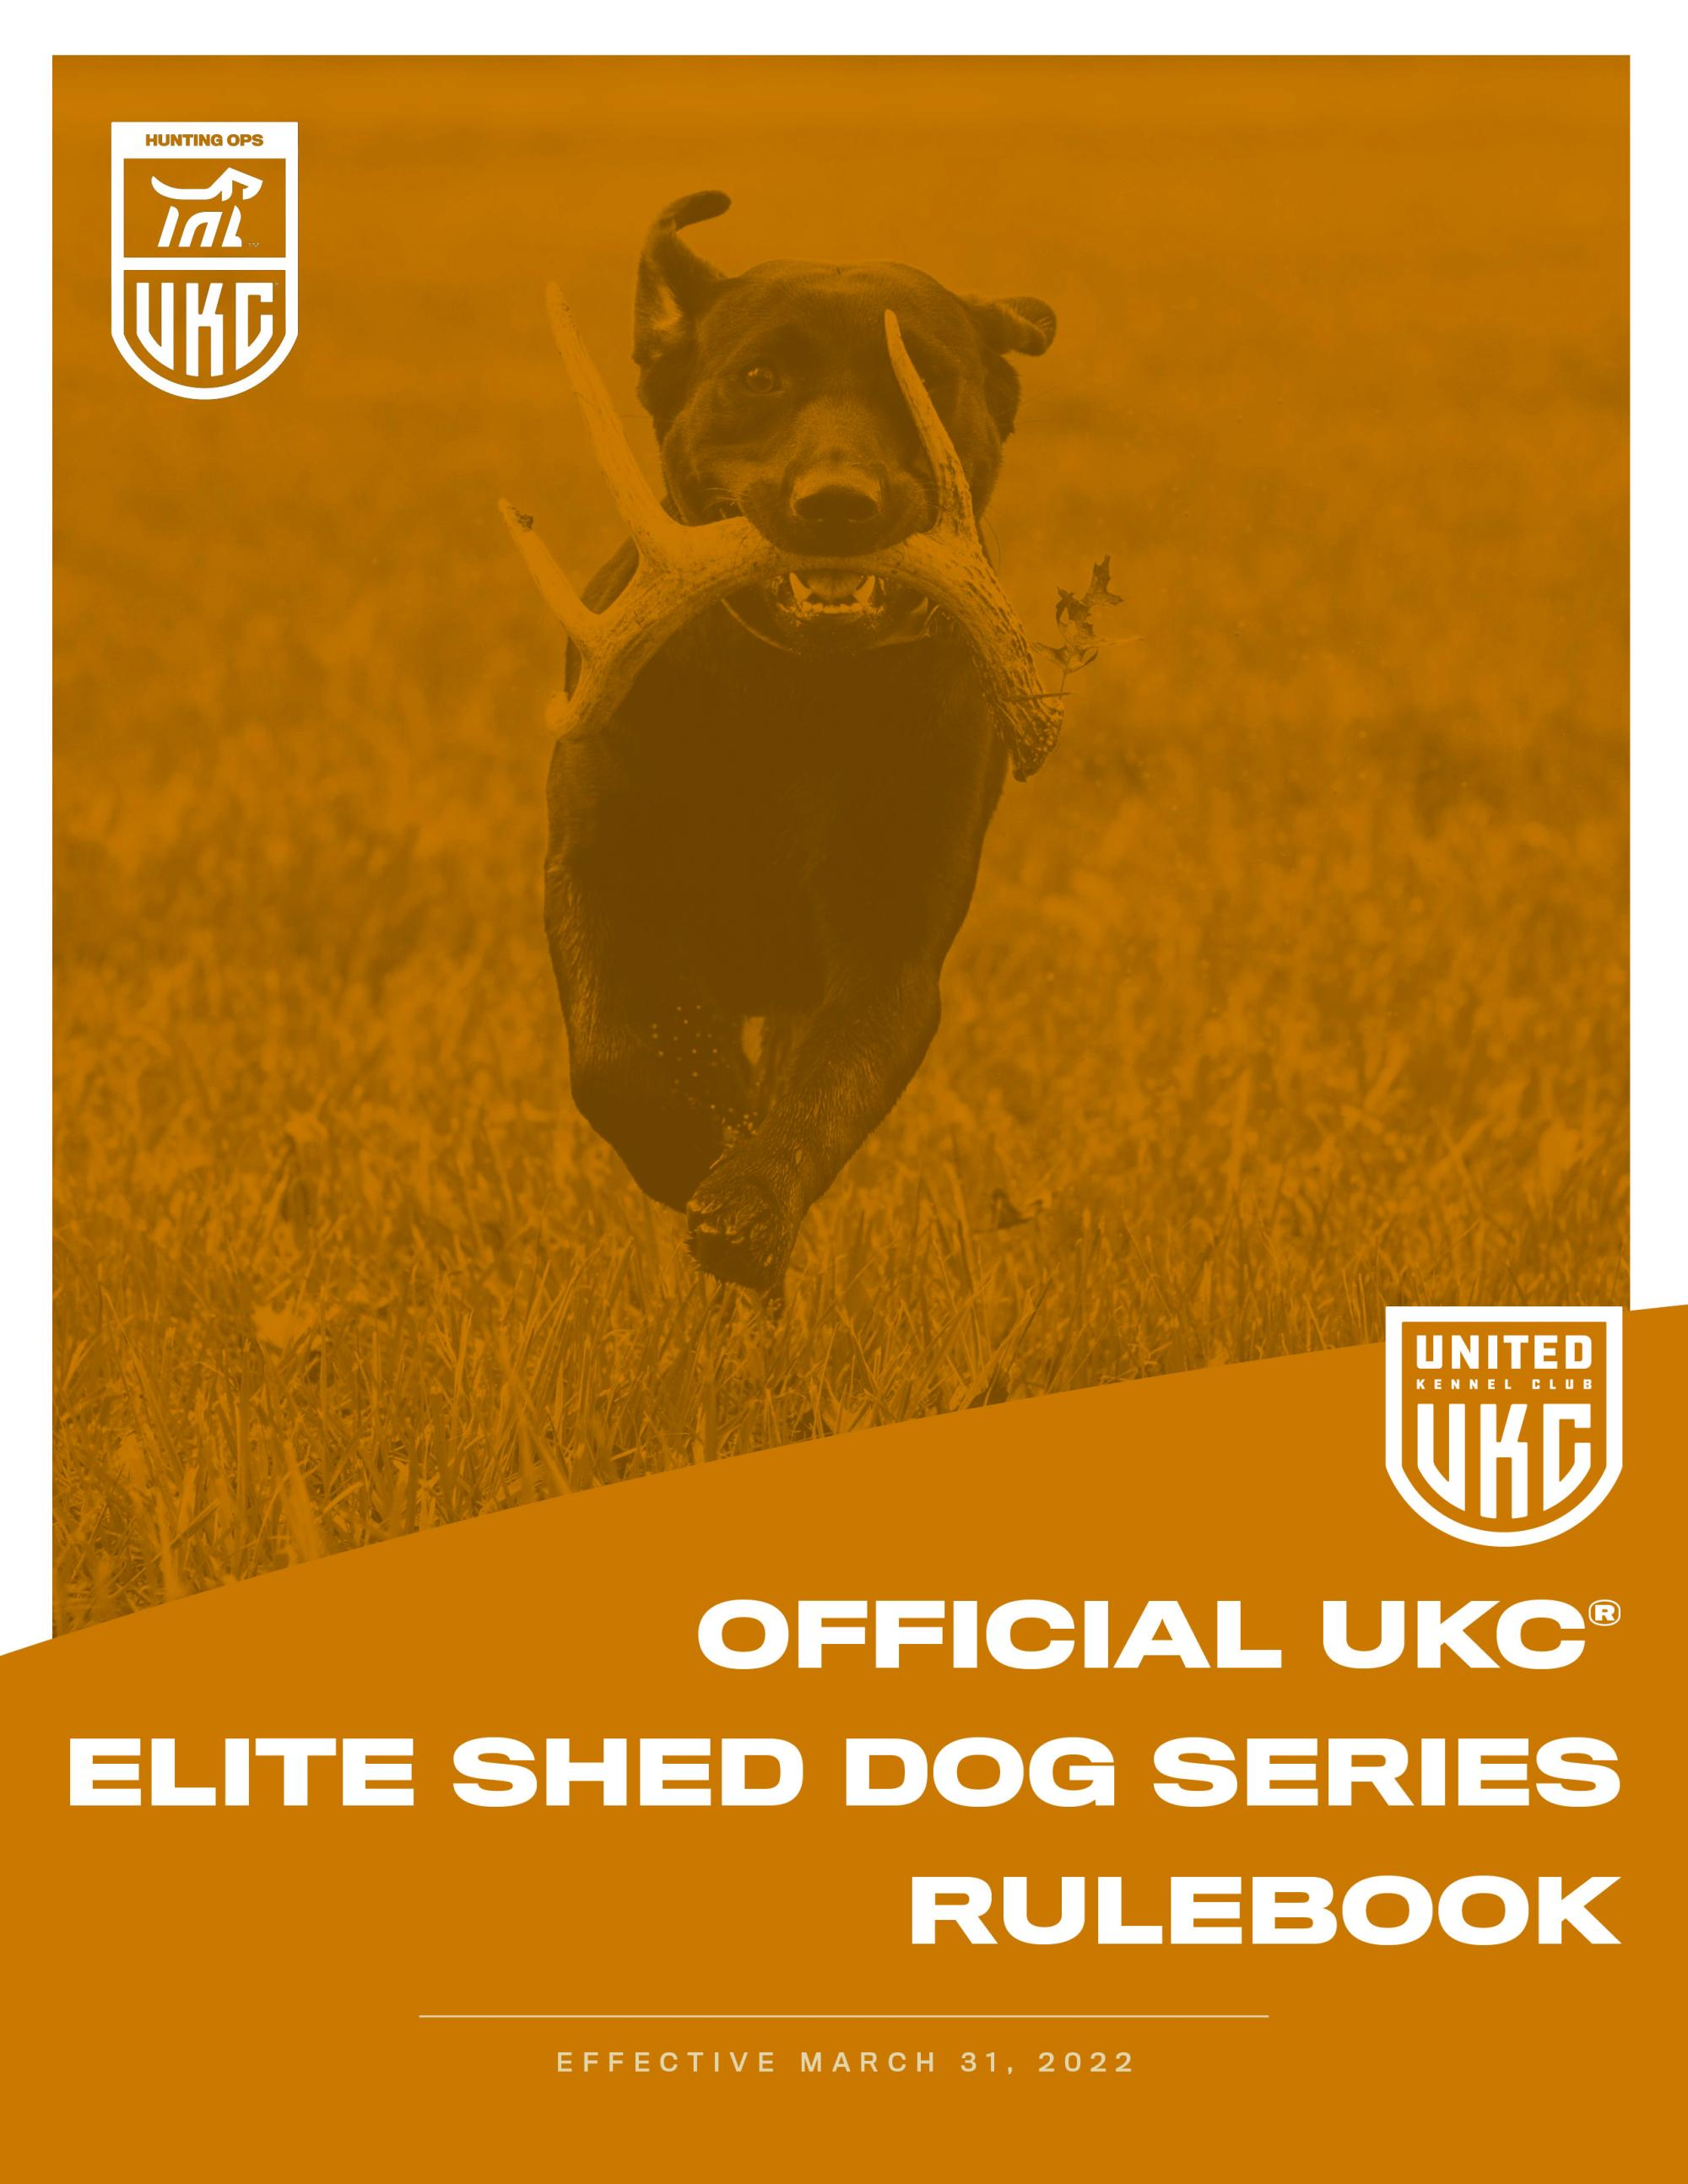 Elite Shed Dog Series Rulebook